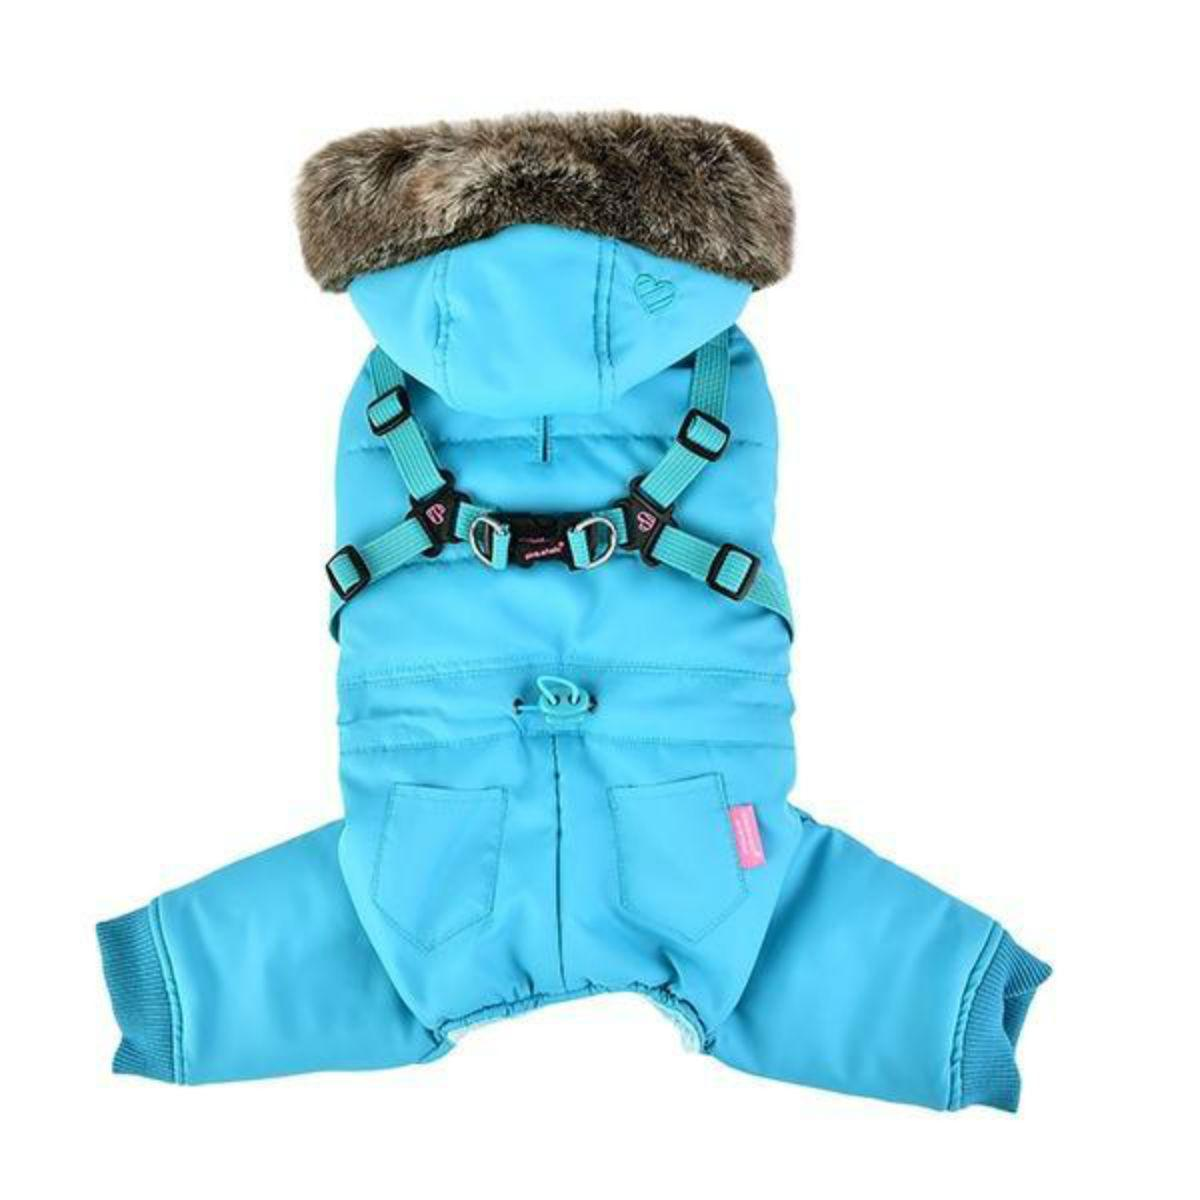 Evelyn Hooded Dog Jumpsuit by Pinkaholic - Aqua